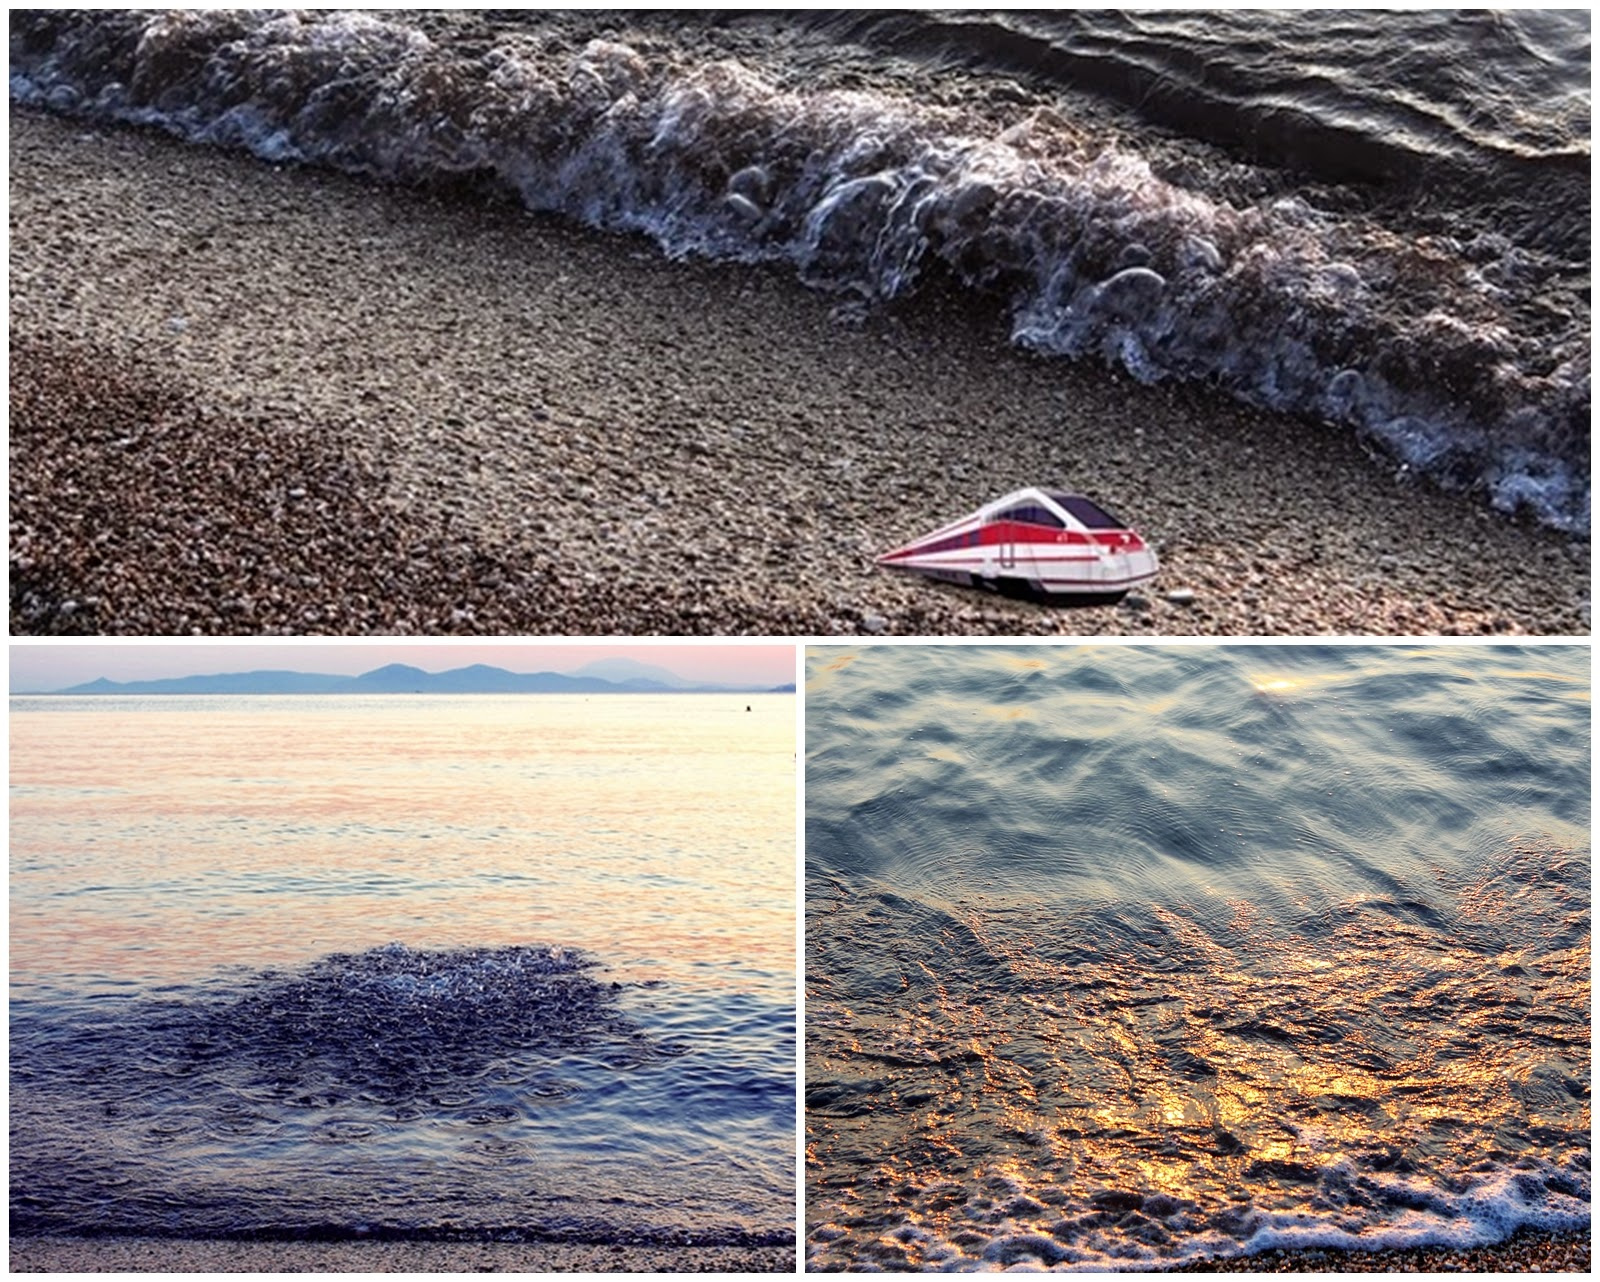 a sunday morning spent at the beach collage